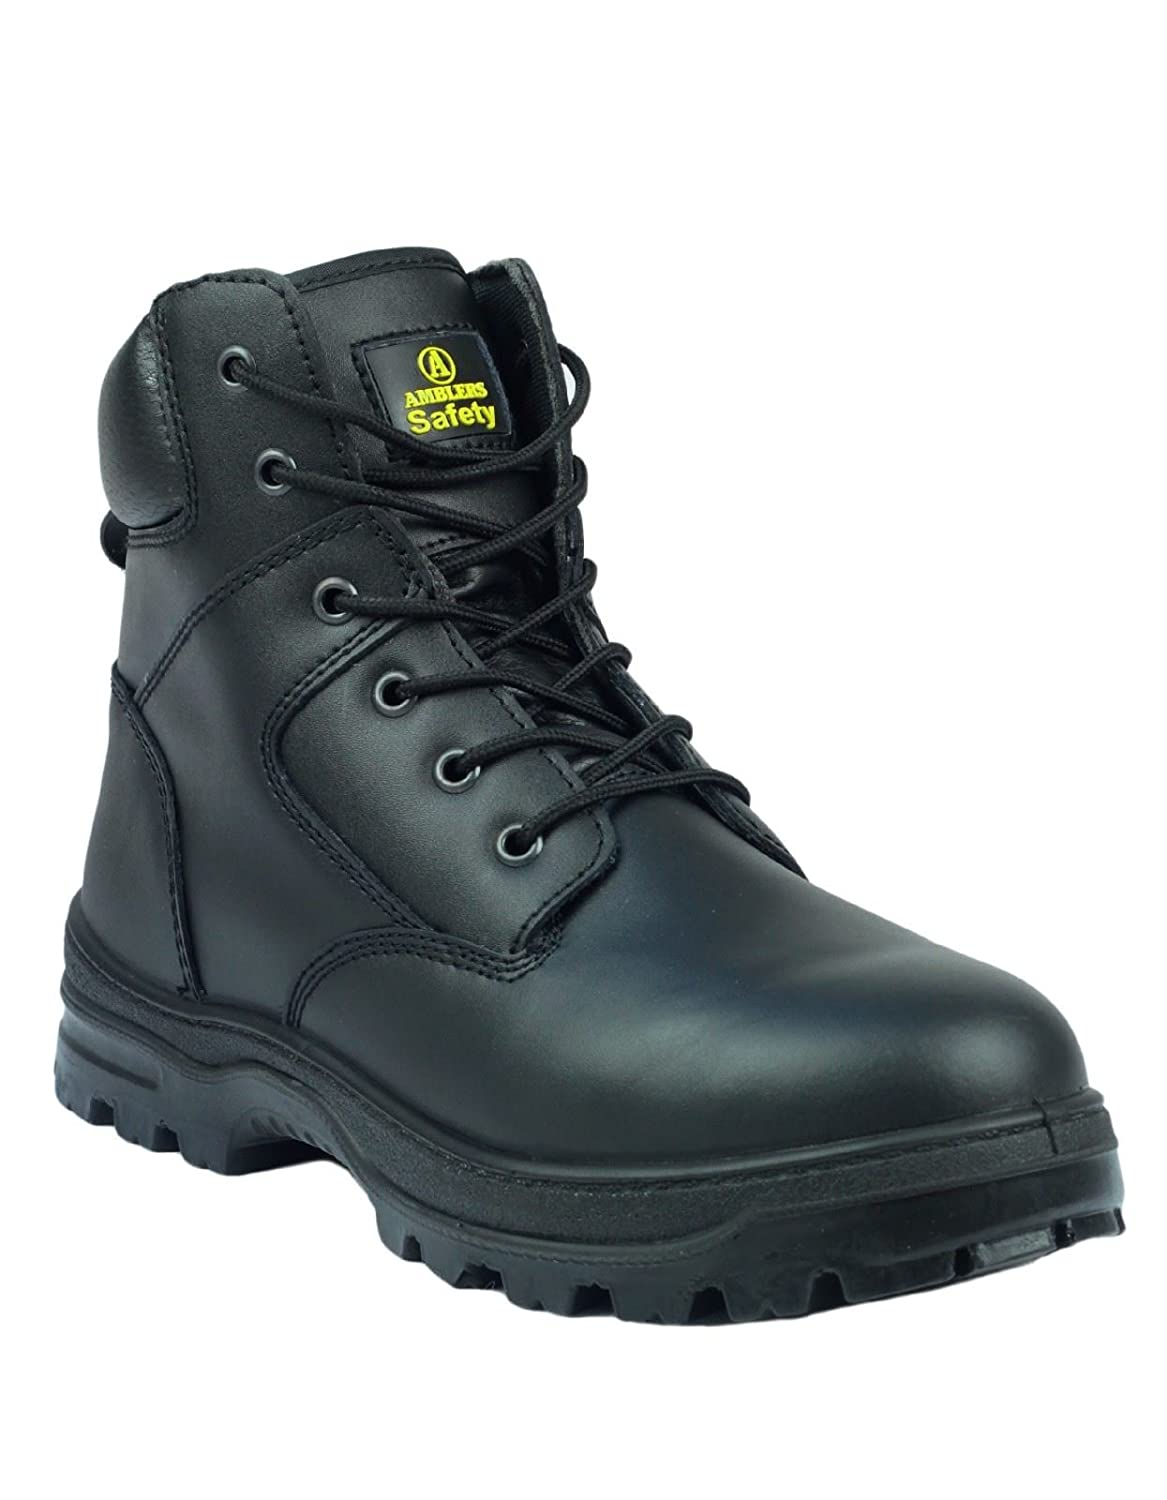 Amblers Steel FS84 Mens Safety Boots Textile Leather PU Lace